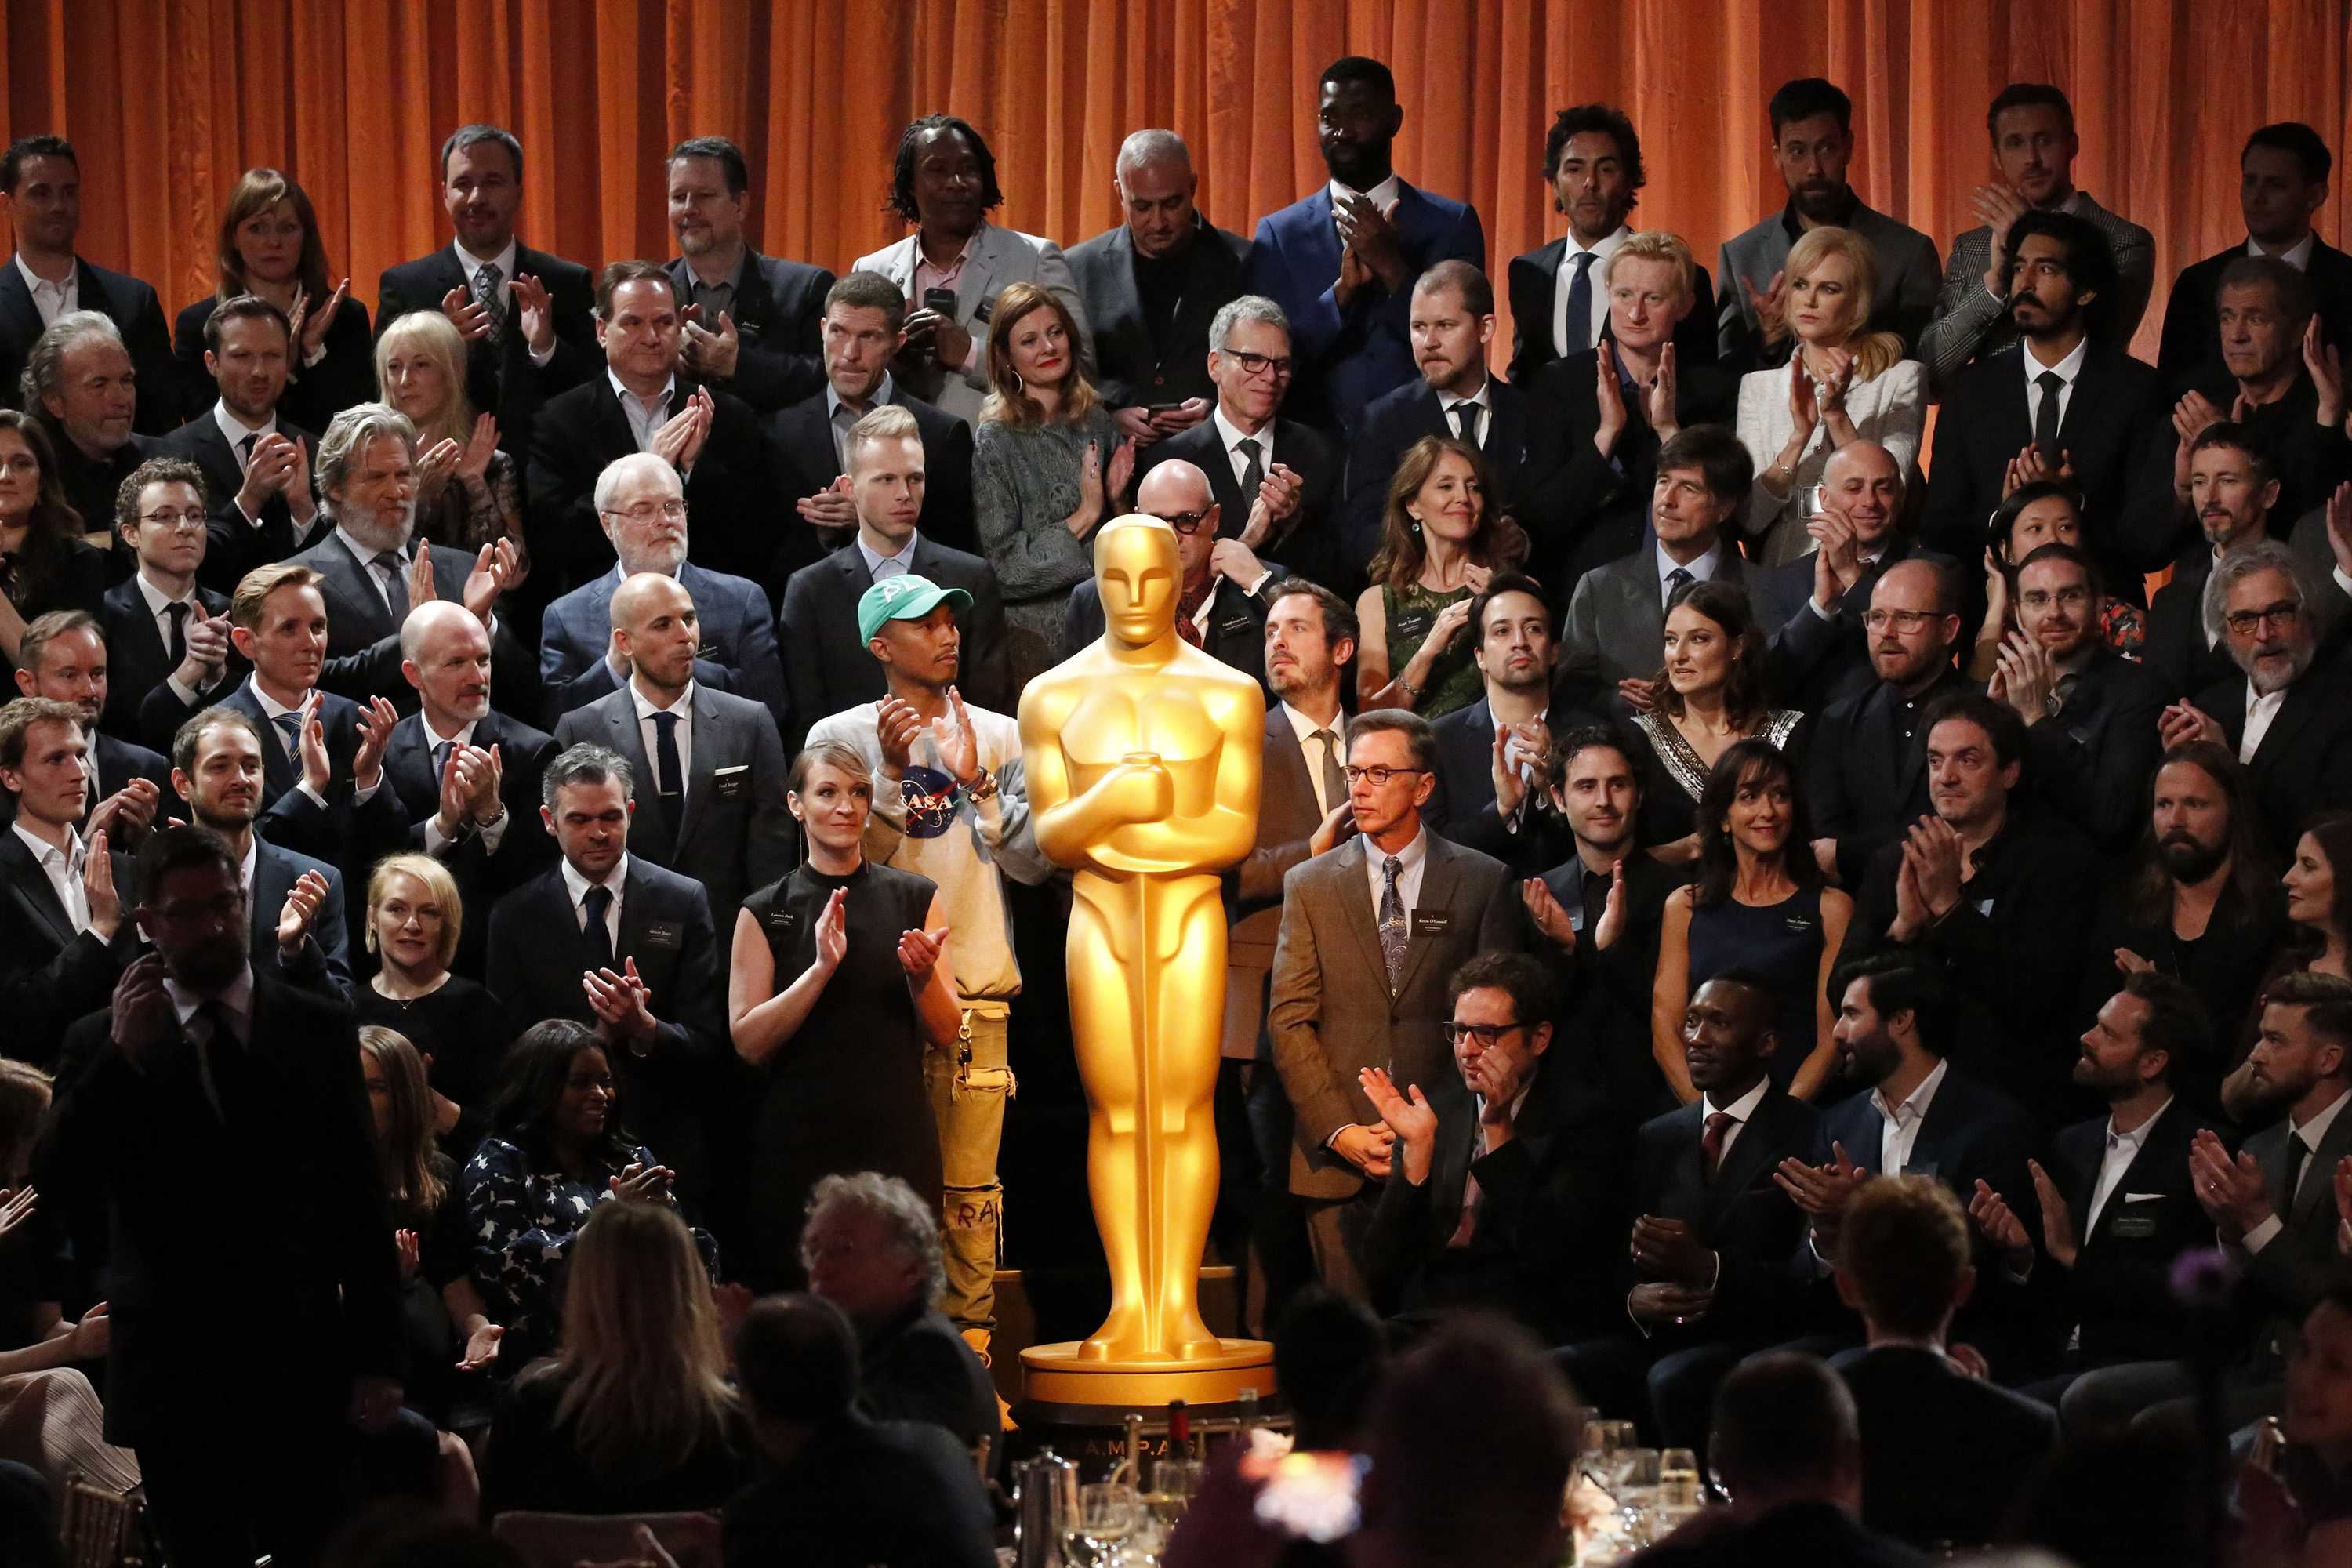 Attendees on Monday, Feb. 6, 2017 prepare for the class picture of all the nominees during the Academy Awards annual nominees luncheon for the 89th Oscars at the Beverly Hilton Hotel in Beverly Hills, Calif. (Al Seib/Los Angeles Times/TNS)